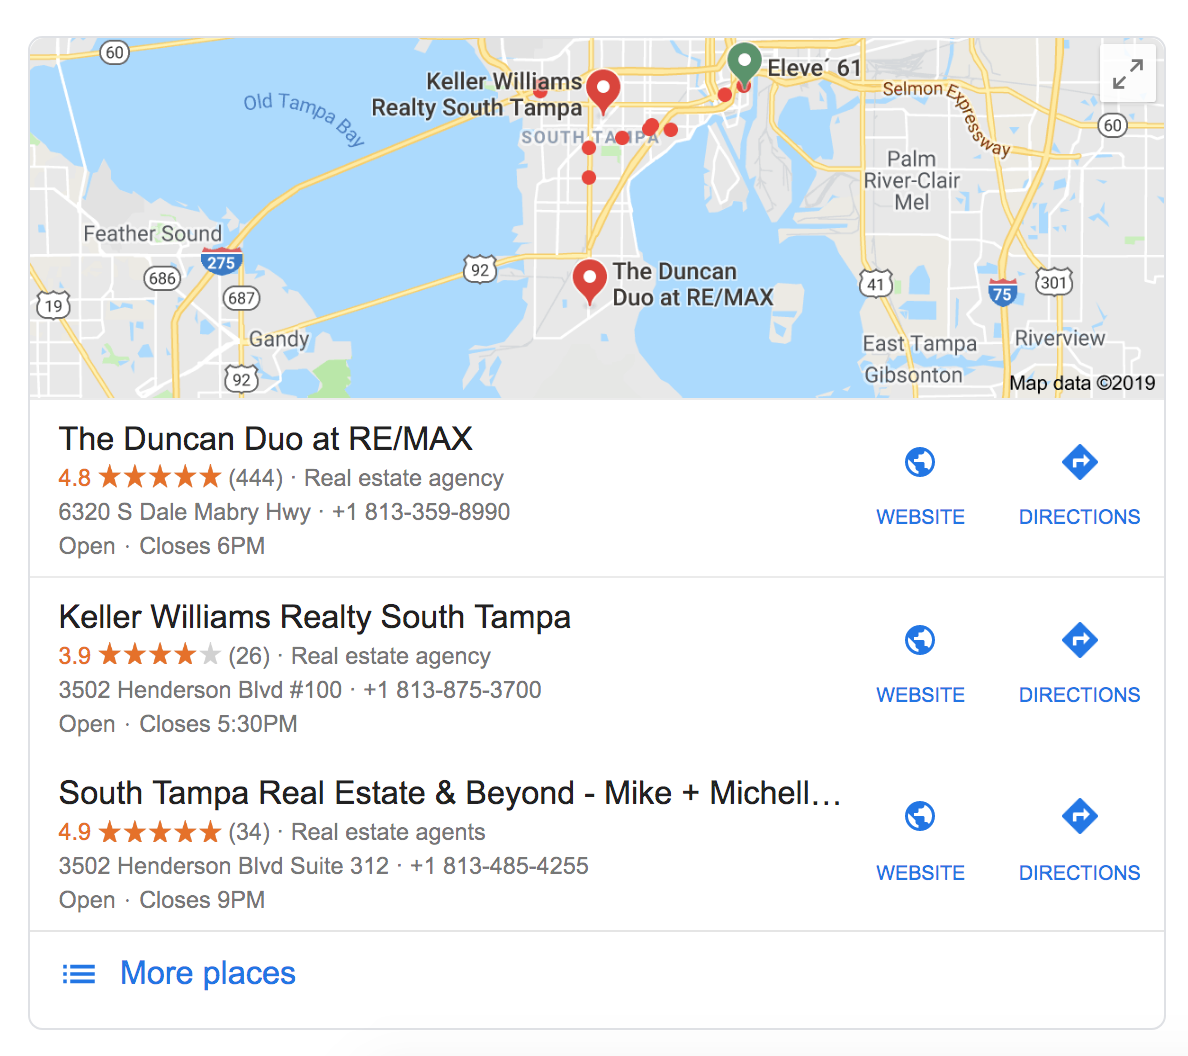 Google 3-Pack for Real Estate | Marketing Strategies for Real Estate Agents